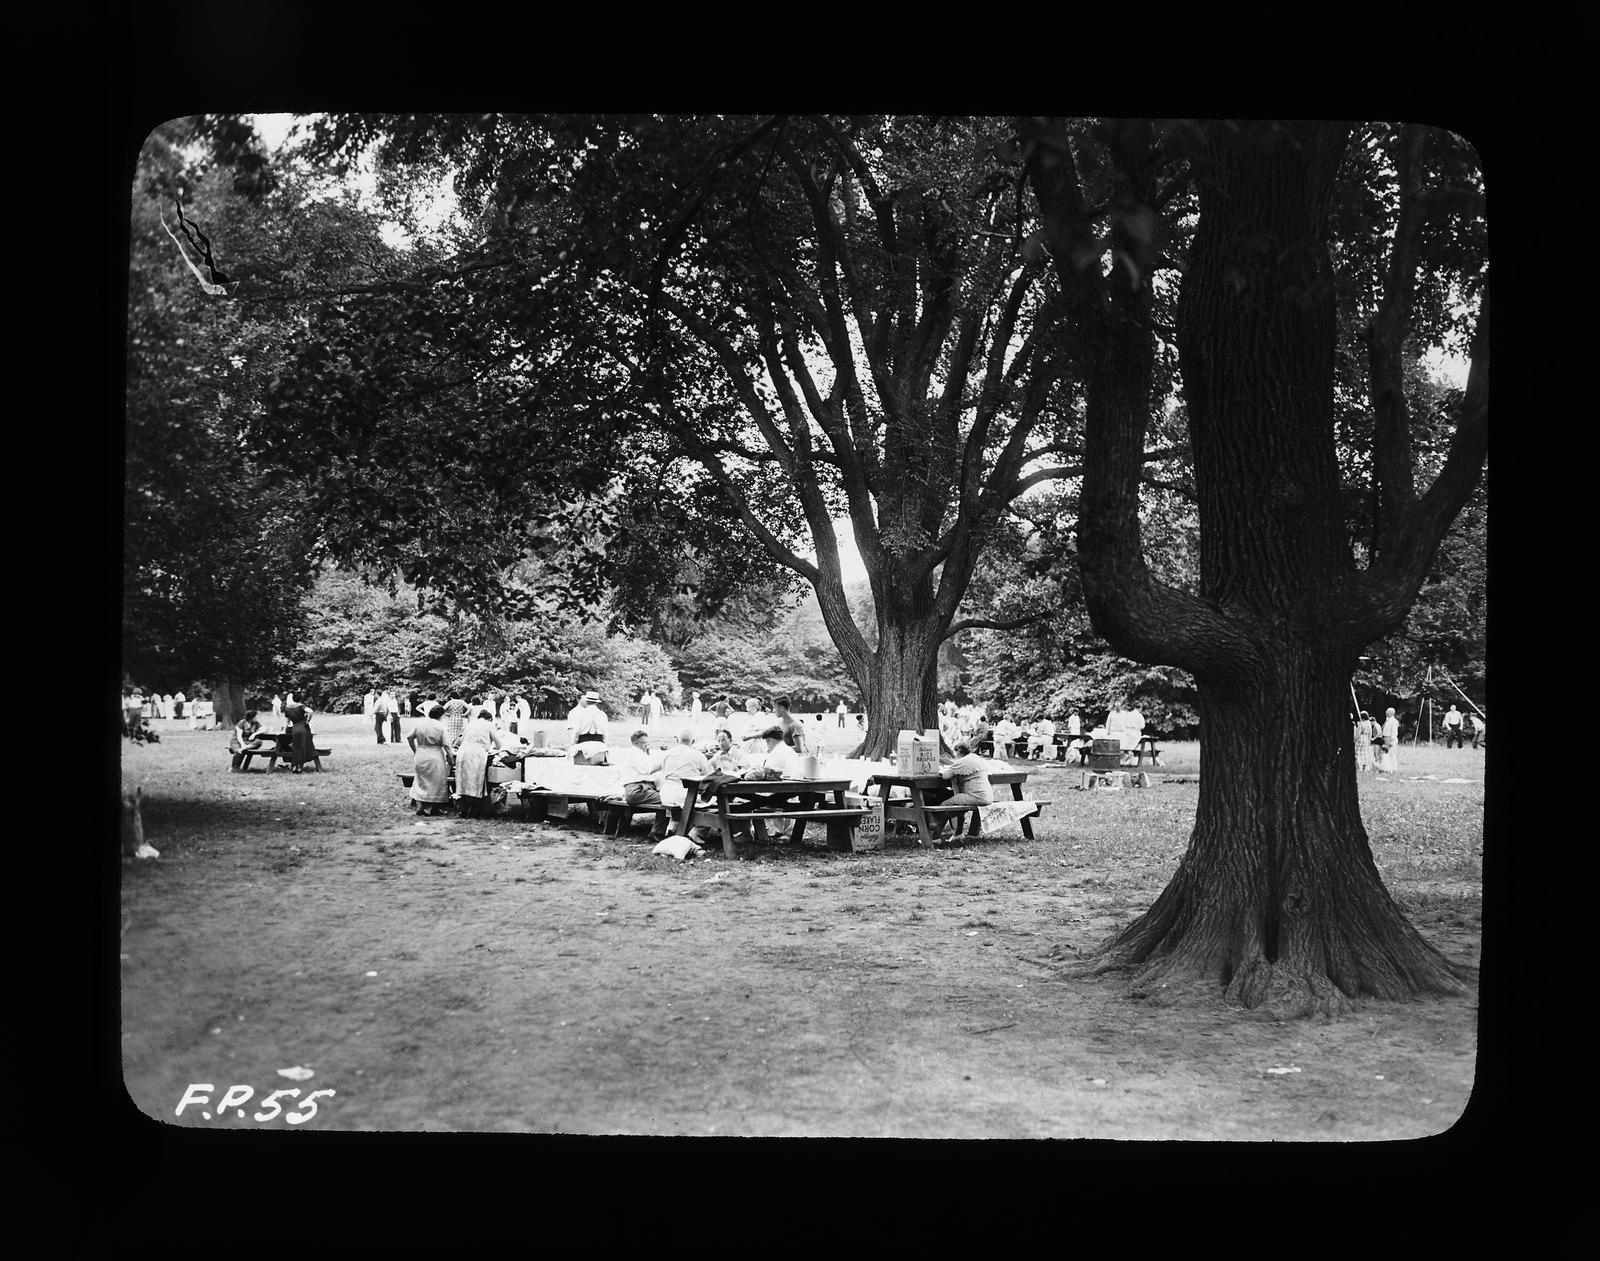 Activities: Picnic and Recreation, [Large Picnic]